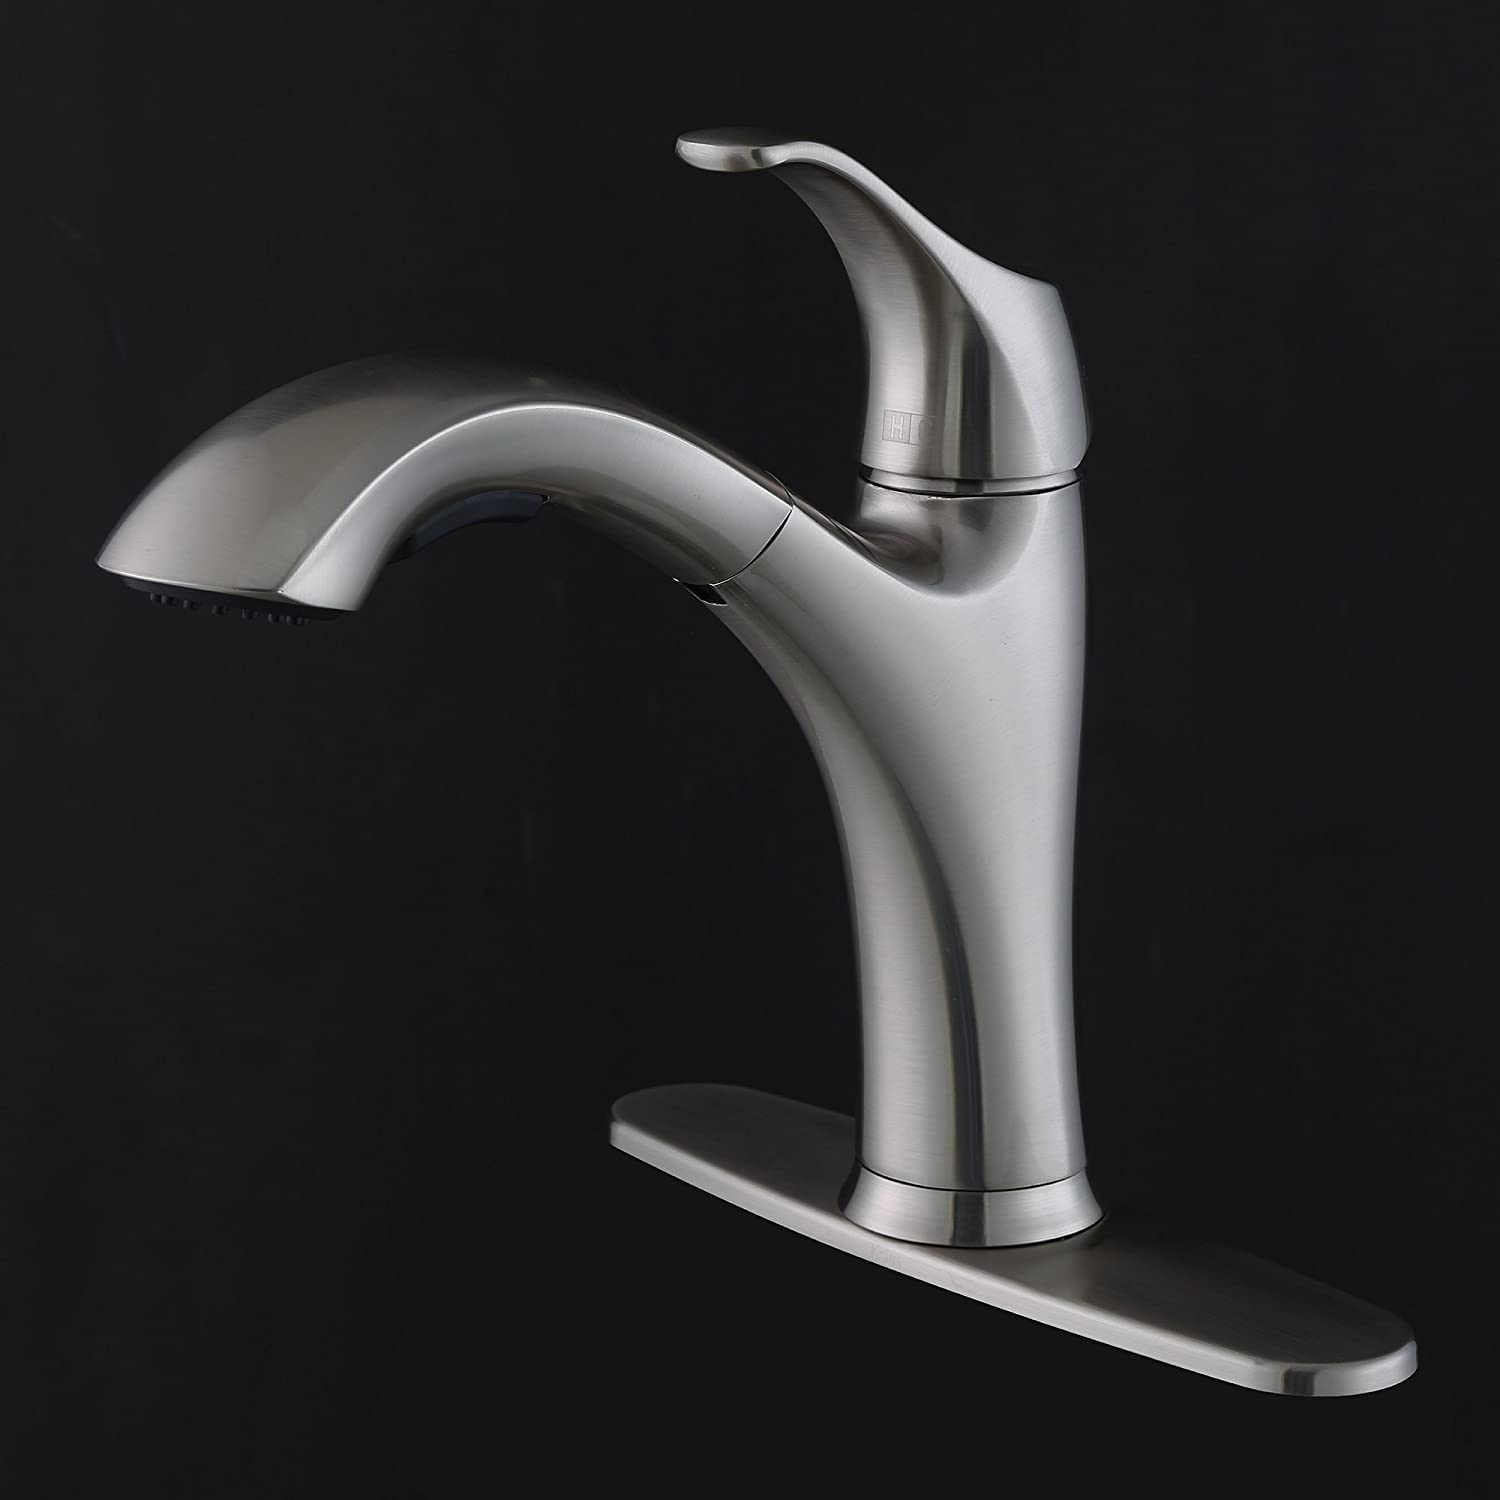 kraus kpf 2250 single lever pull out kitchen faucet stainless